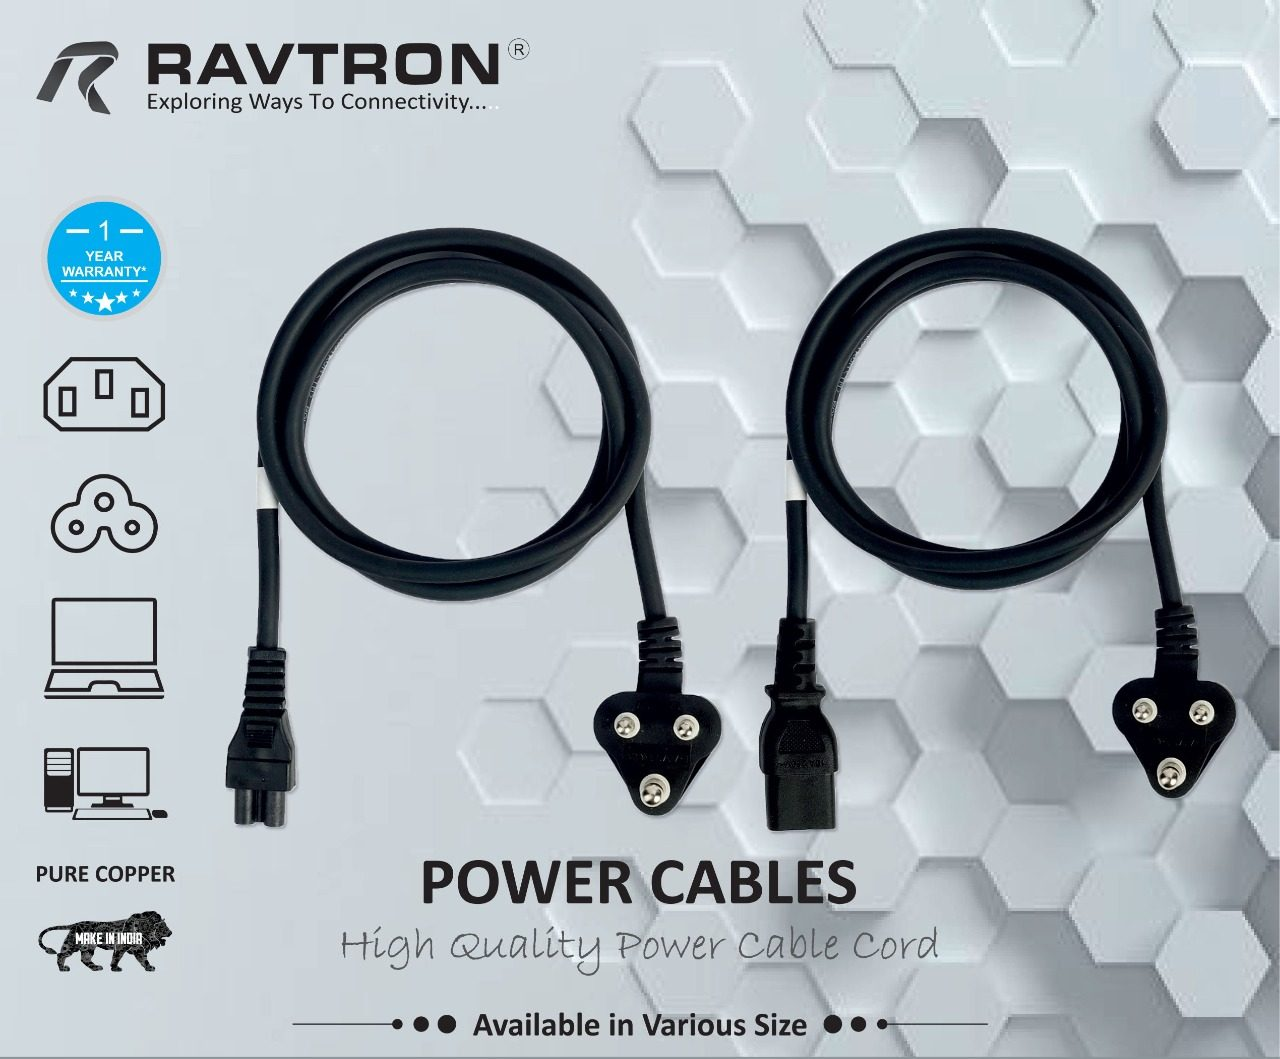 Ravtron-power-cord-category-banner